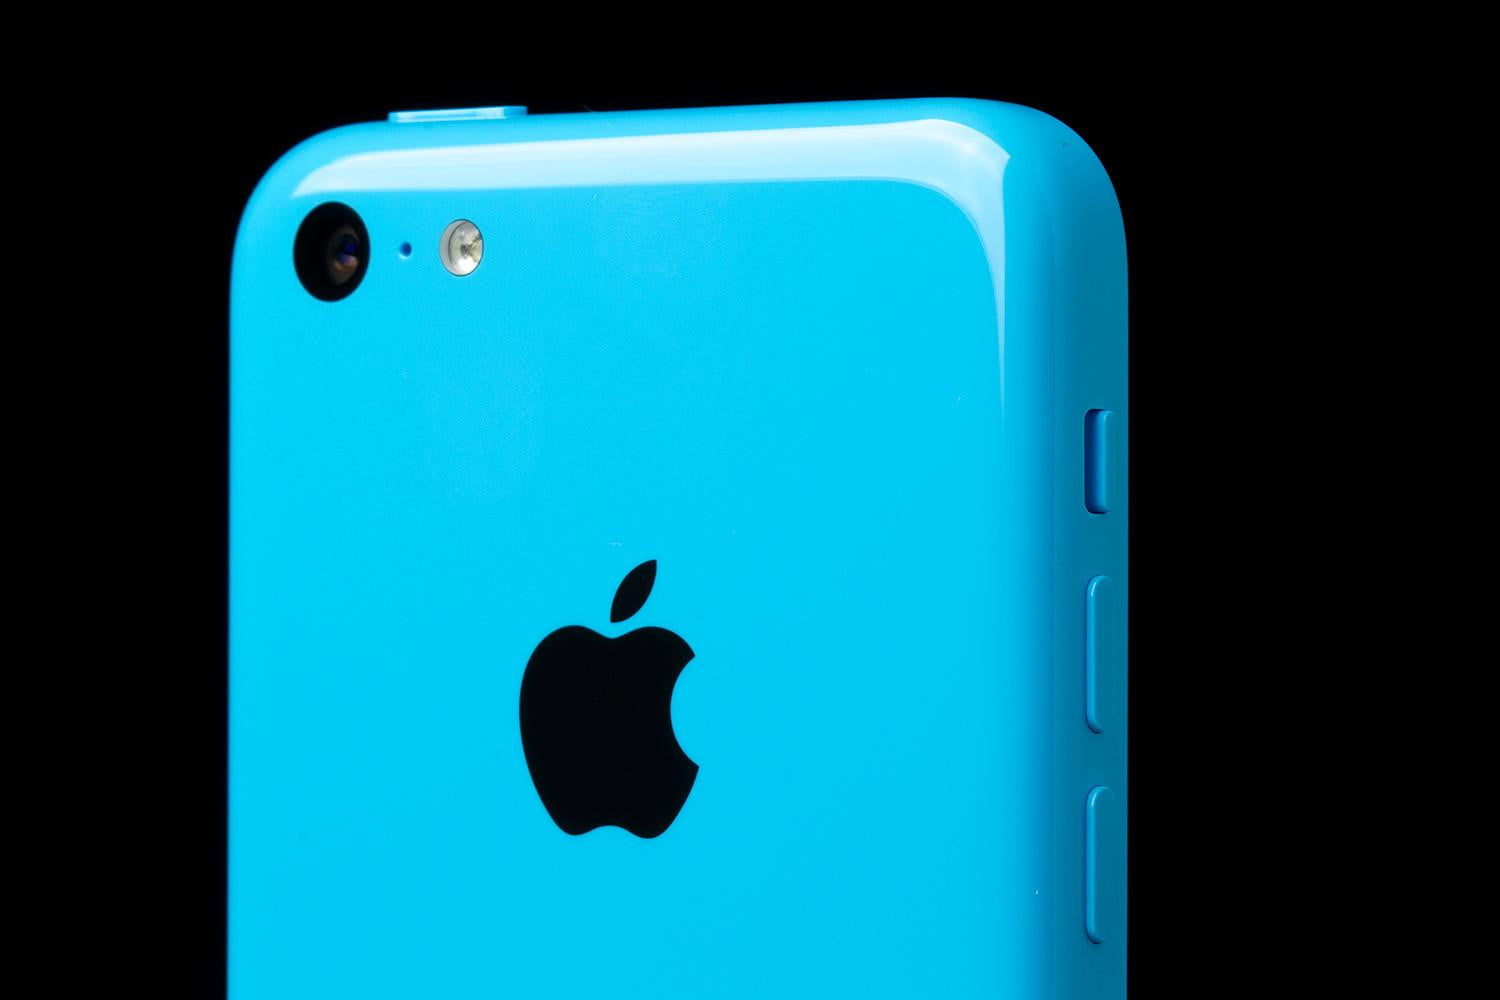 Apple iPhone 5c review, engadget Apple iPhone 5c Review, phone Arena IPhone 5C review, expert Reviews